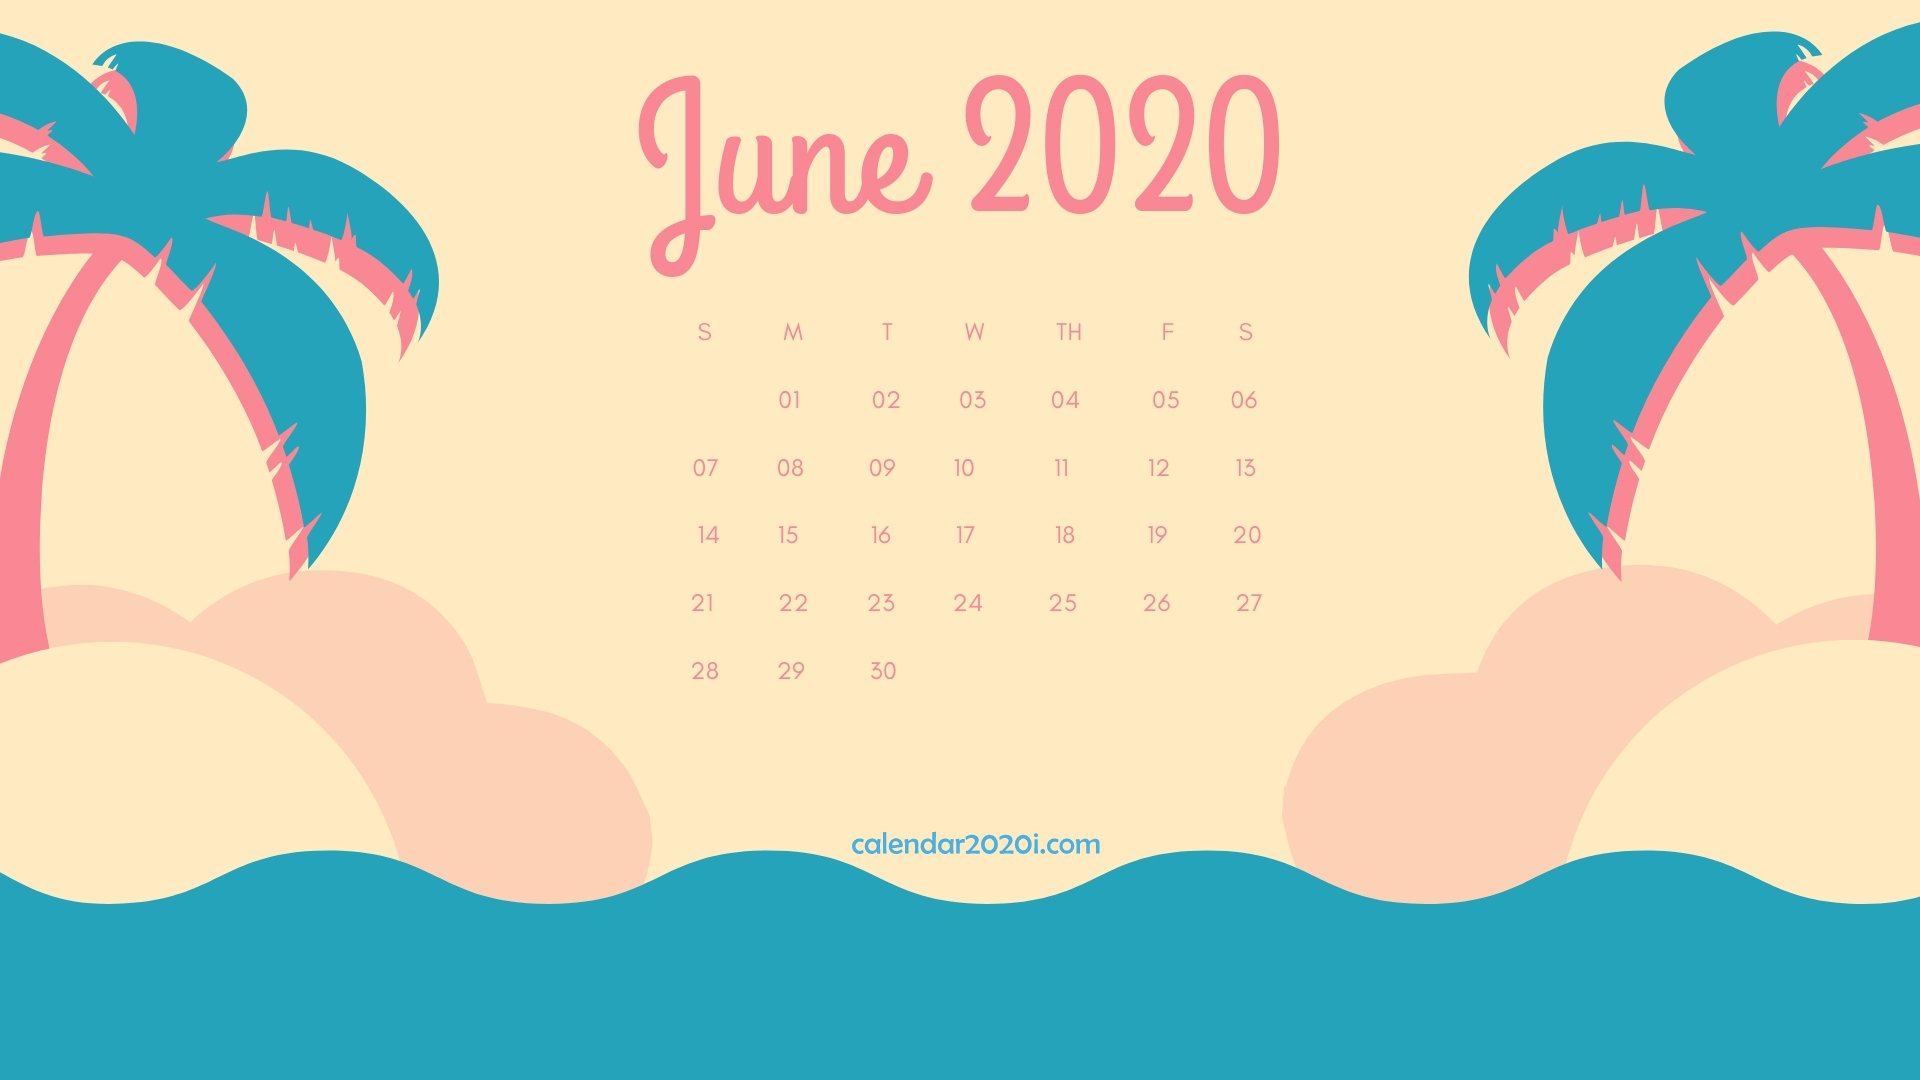 2020 Calendar Monthly HD Wallpapers Calendar 2020 1920x1080